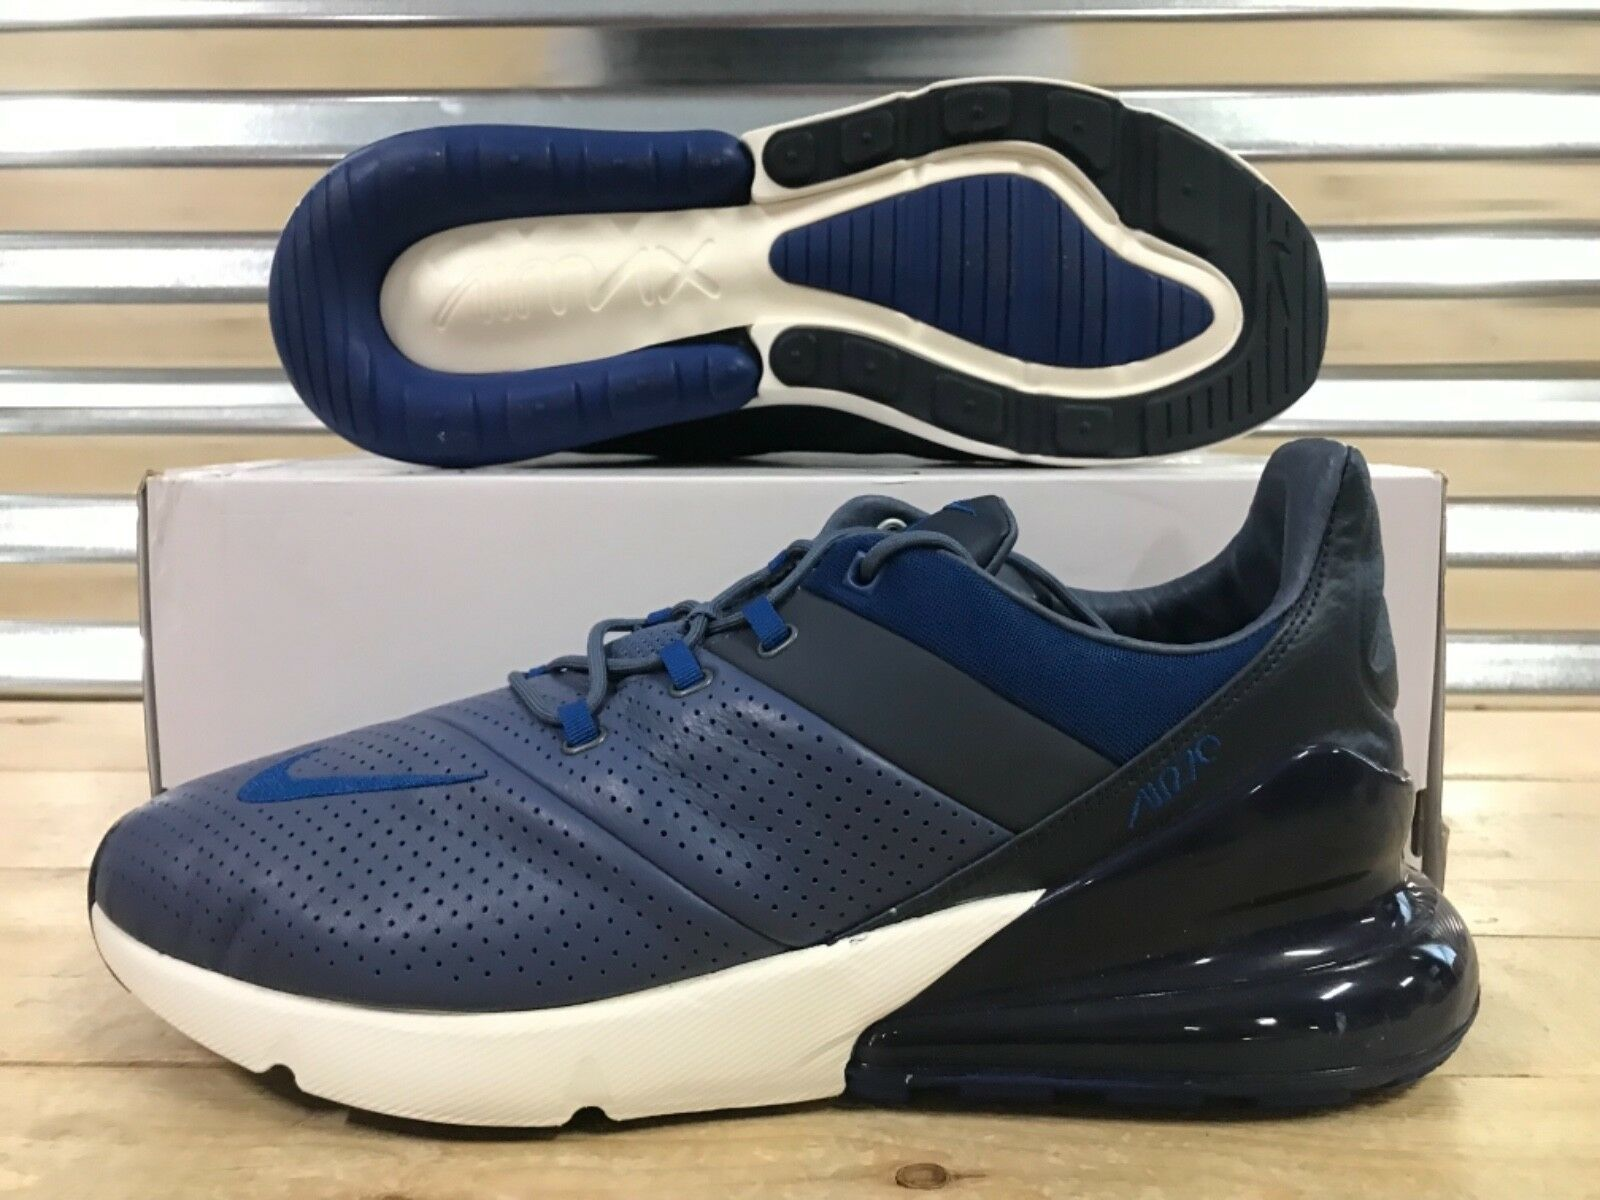 Nike Air Max 270 Premium shoes Diffused blueee Gym Navy SZ 13 ( AO8283-400 )